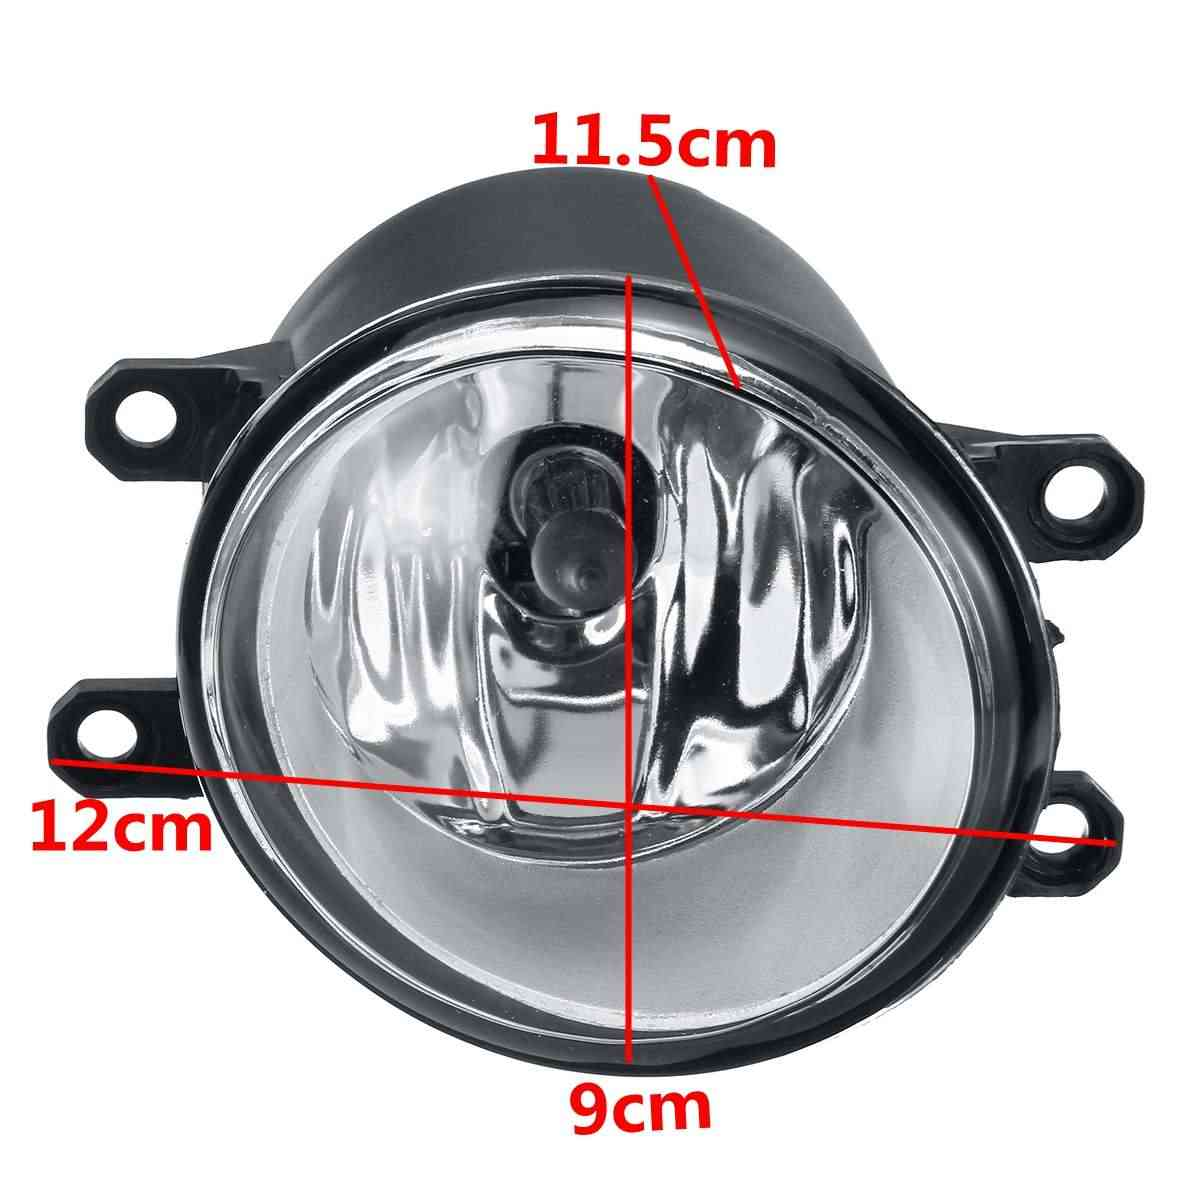 Car 2Pcs Front Fog Light for Toyoya Sienna Avalon Camry Corolla Highlander Matrix Prius Rav4 For Lexus ES350 GS350 IS350 GX460